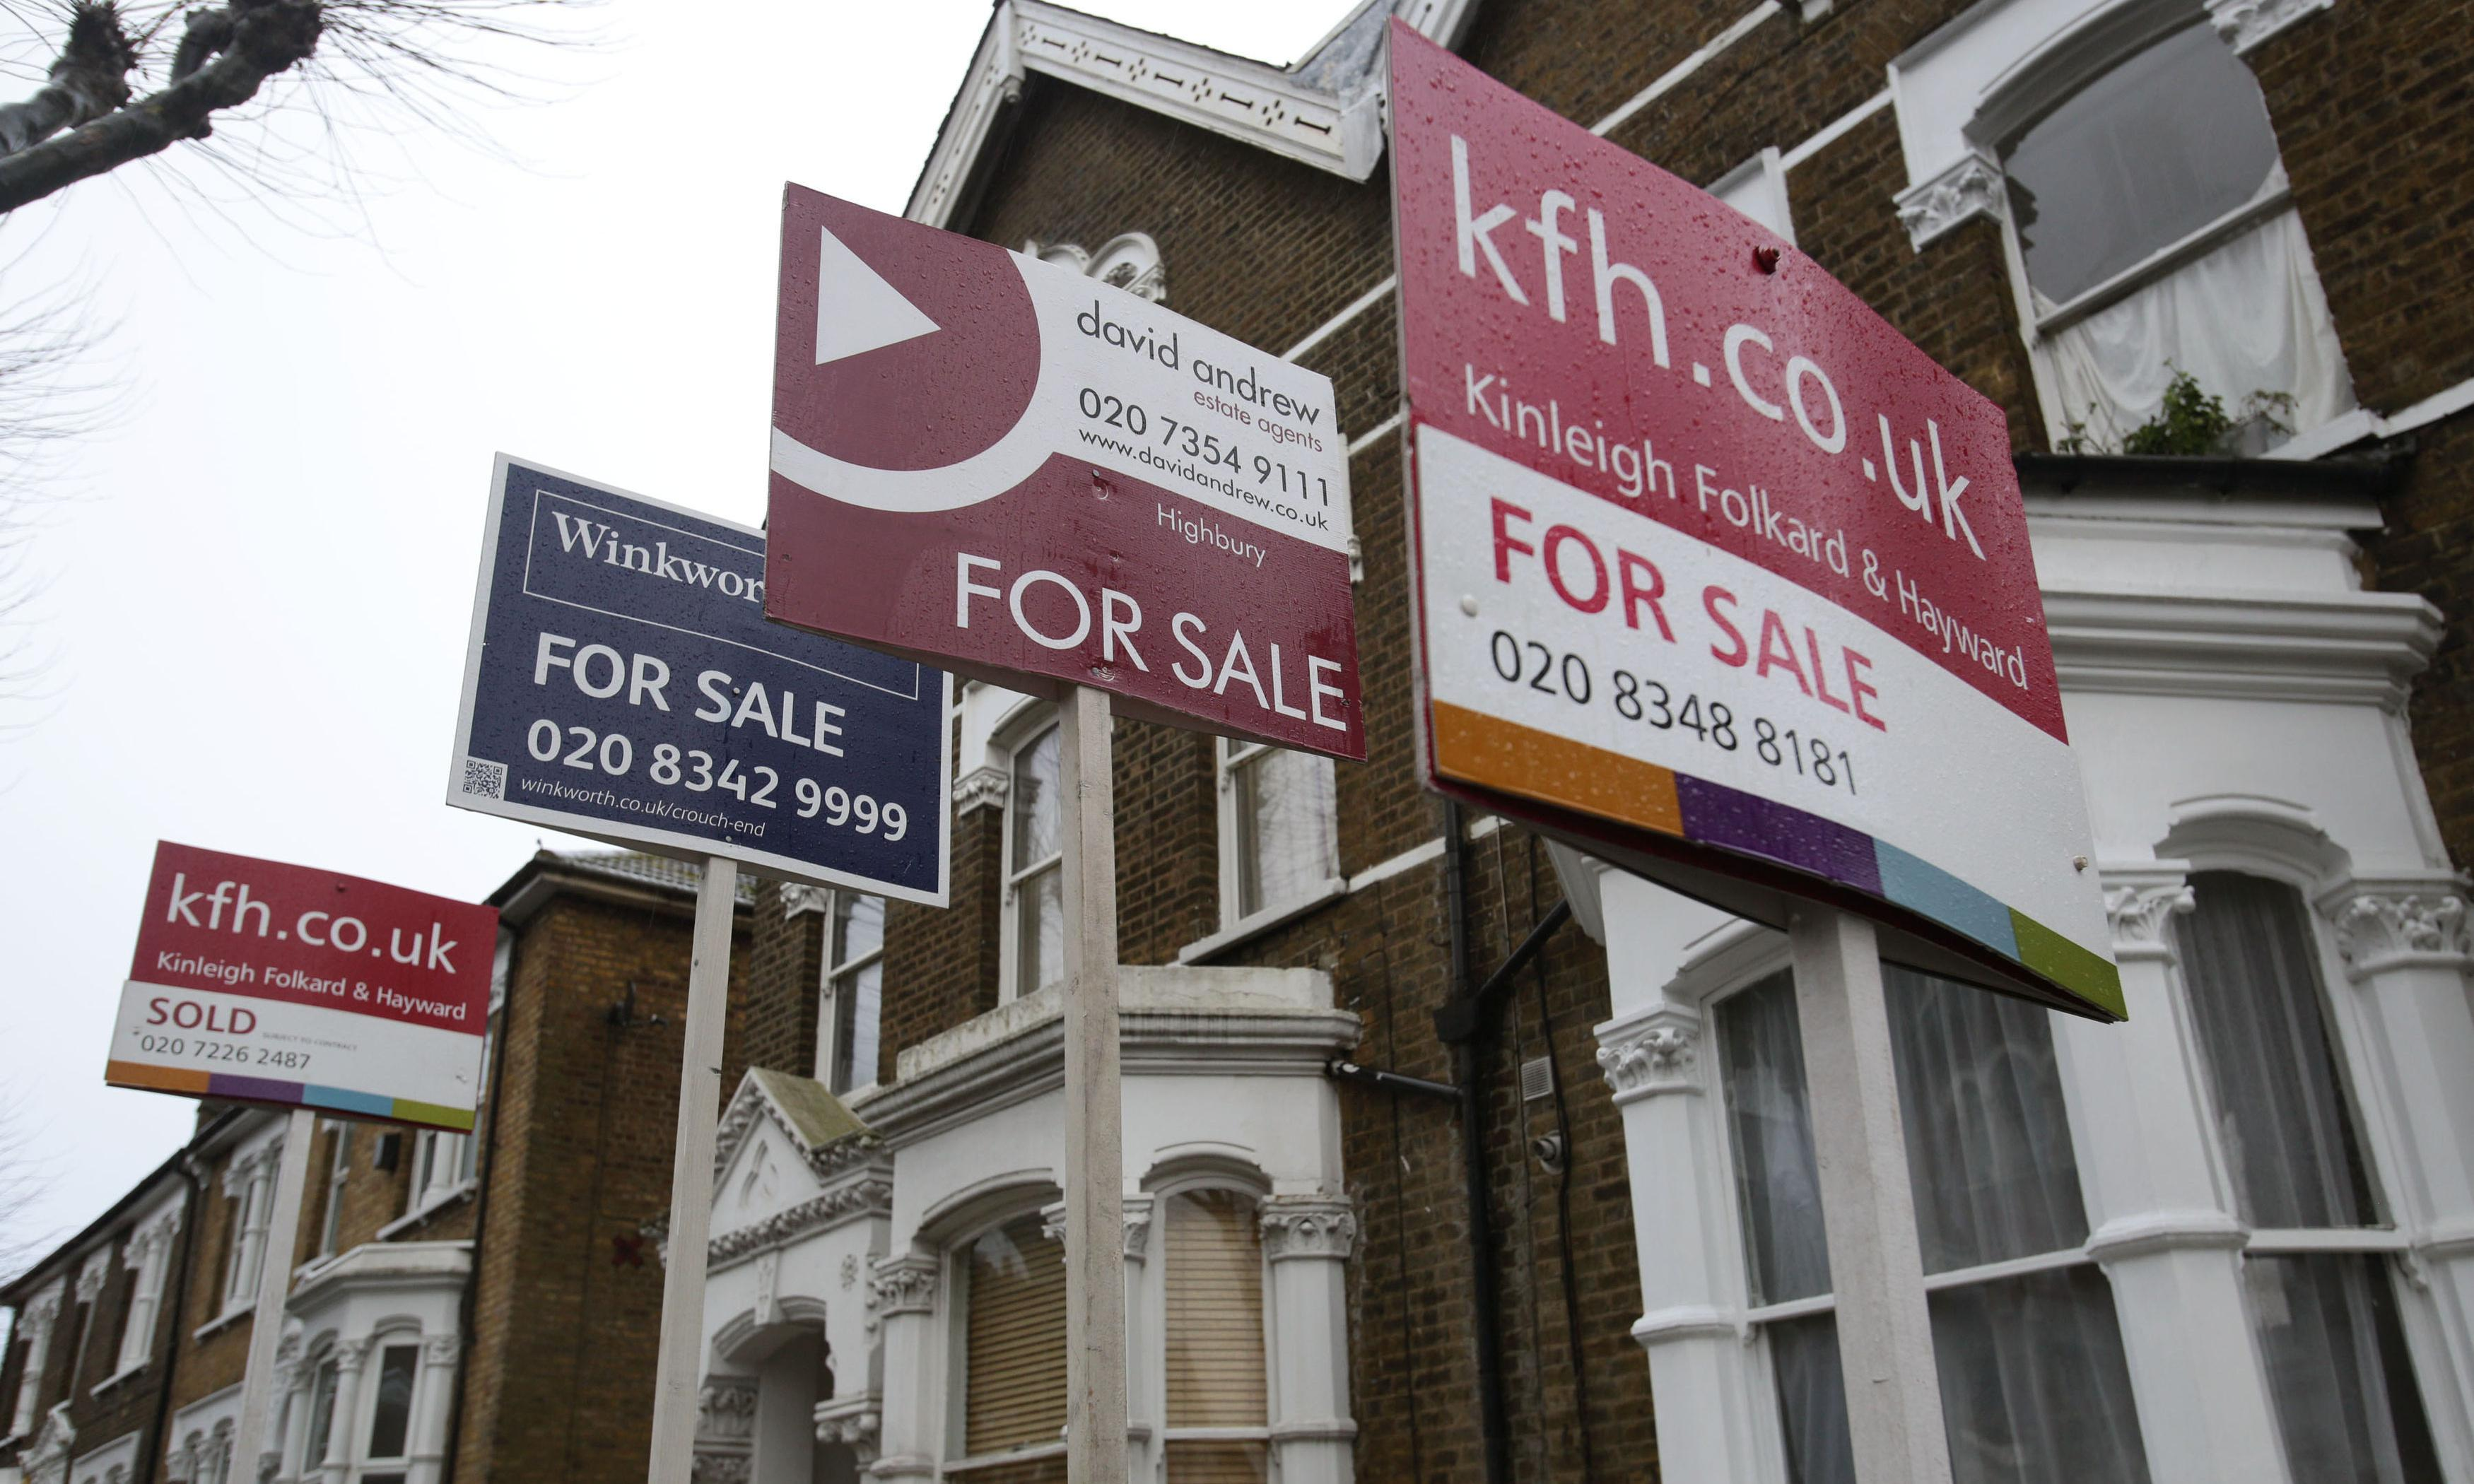 Brexit uncertainty taking toll on property market, experts say